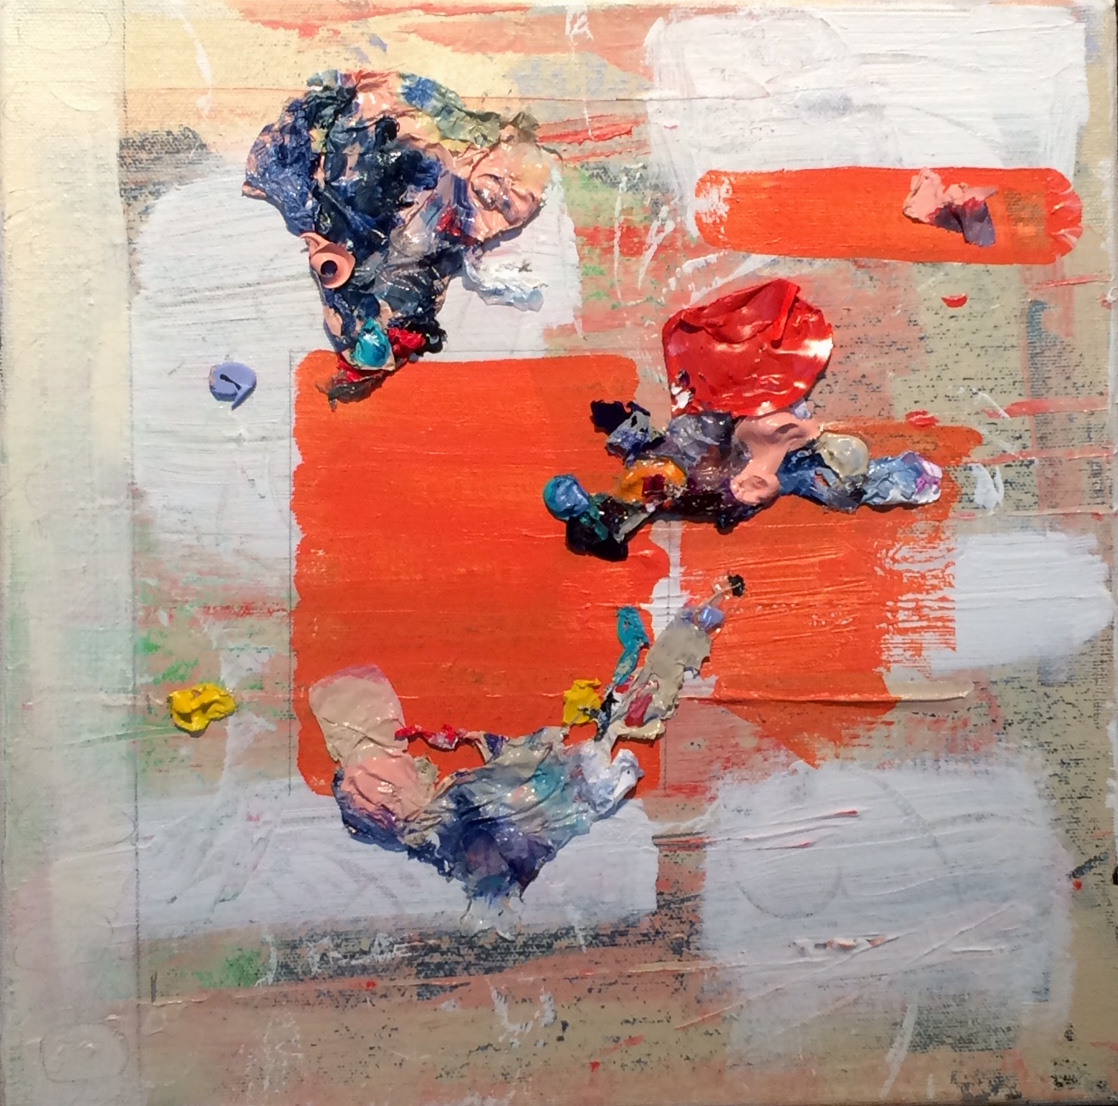 Mixed media painting by Lyn Lettunich